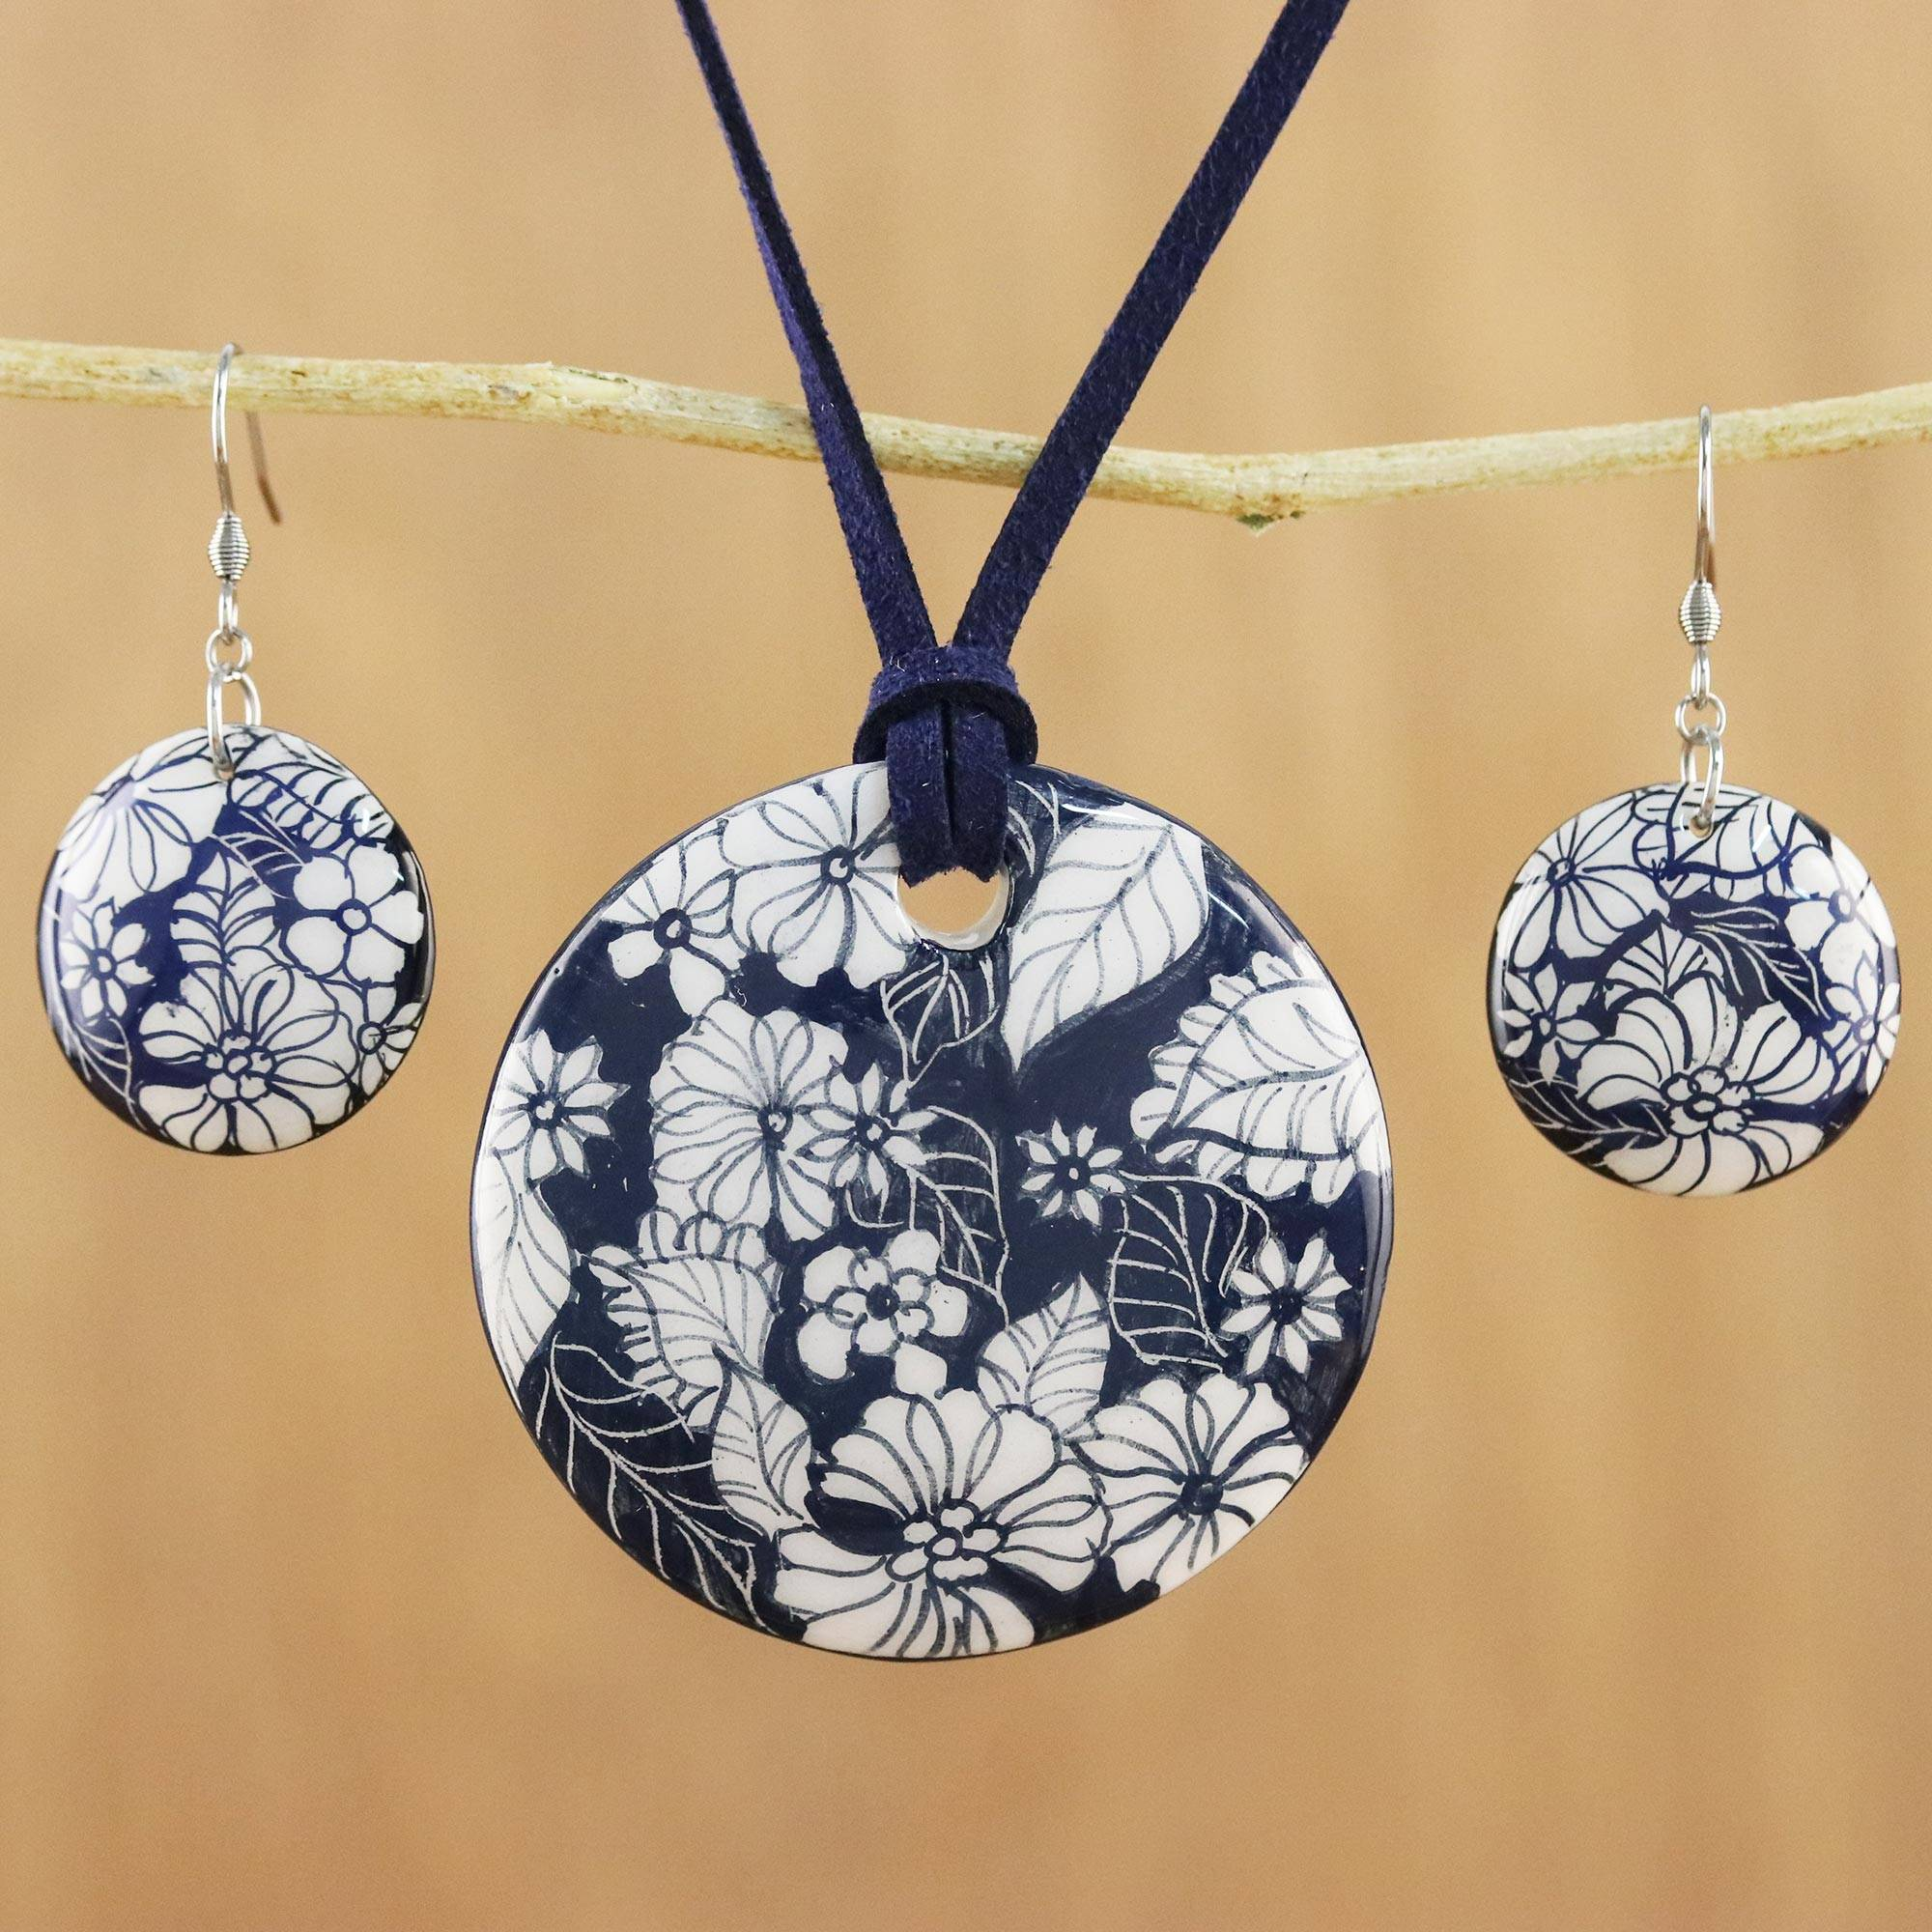 Beautiful Spring Daisies Flowers Glass Pendant Handmade Art Necklace Silver Gift Present